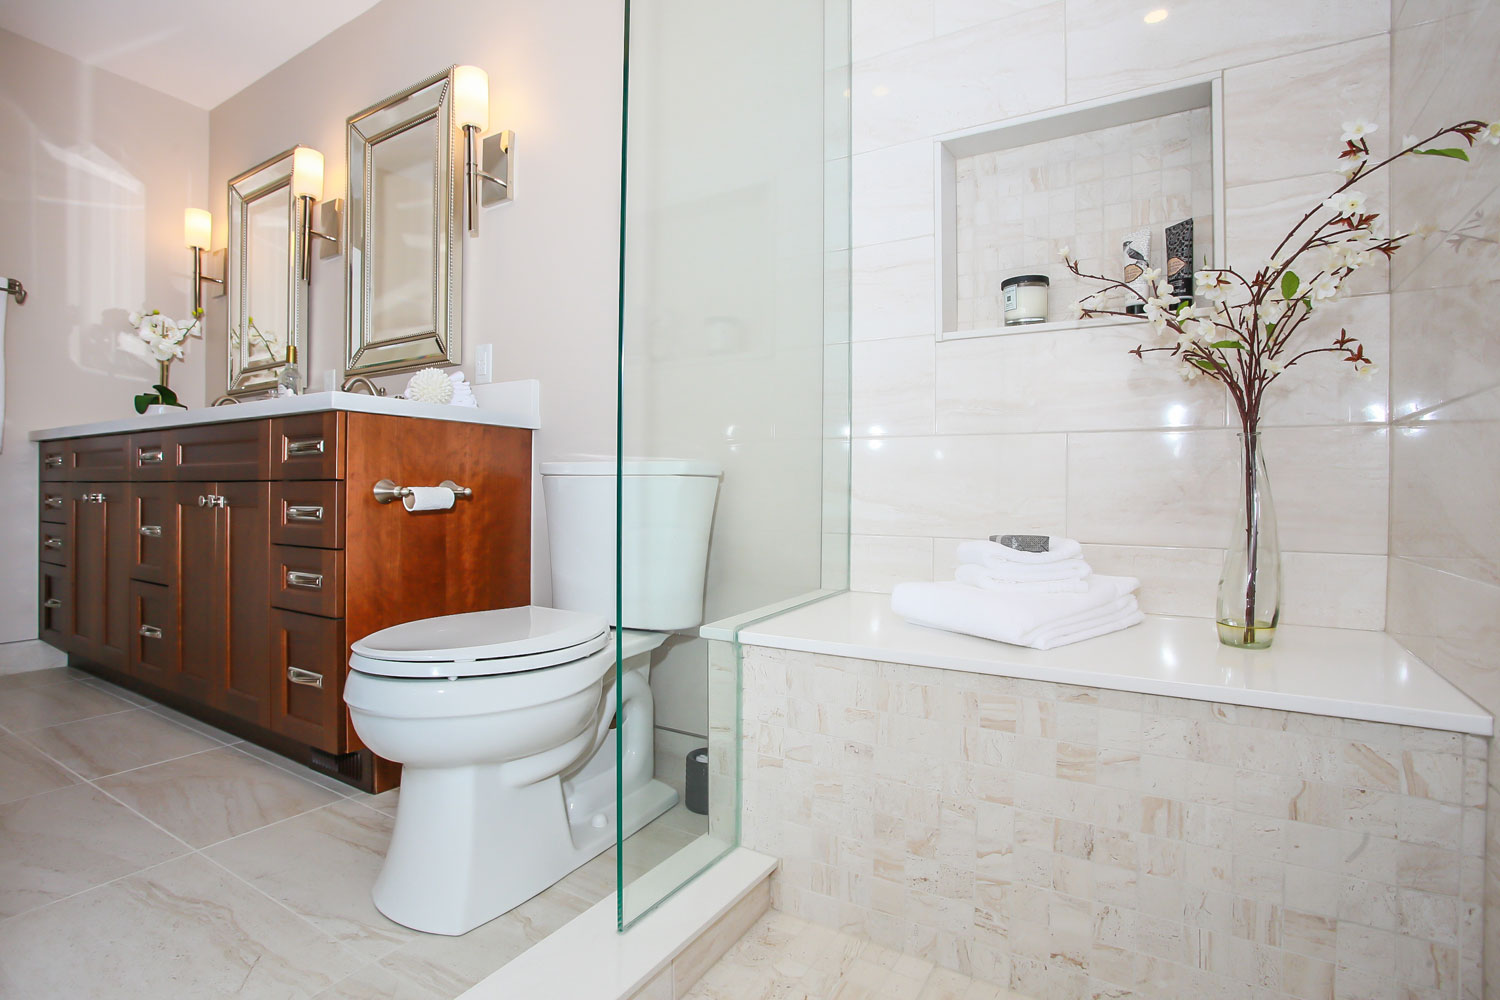 ensuite design and renovation with cherry cabinets and standup shower with bench seat - total living concepts barrie ontario